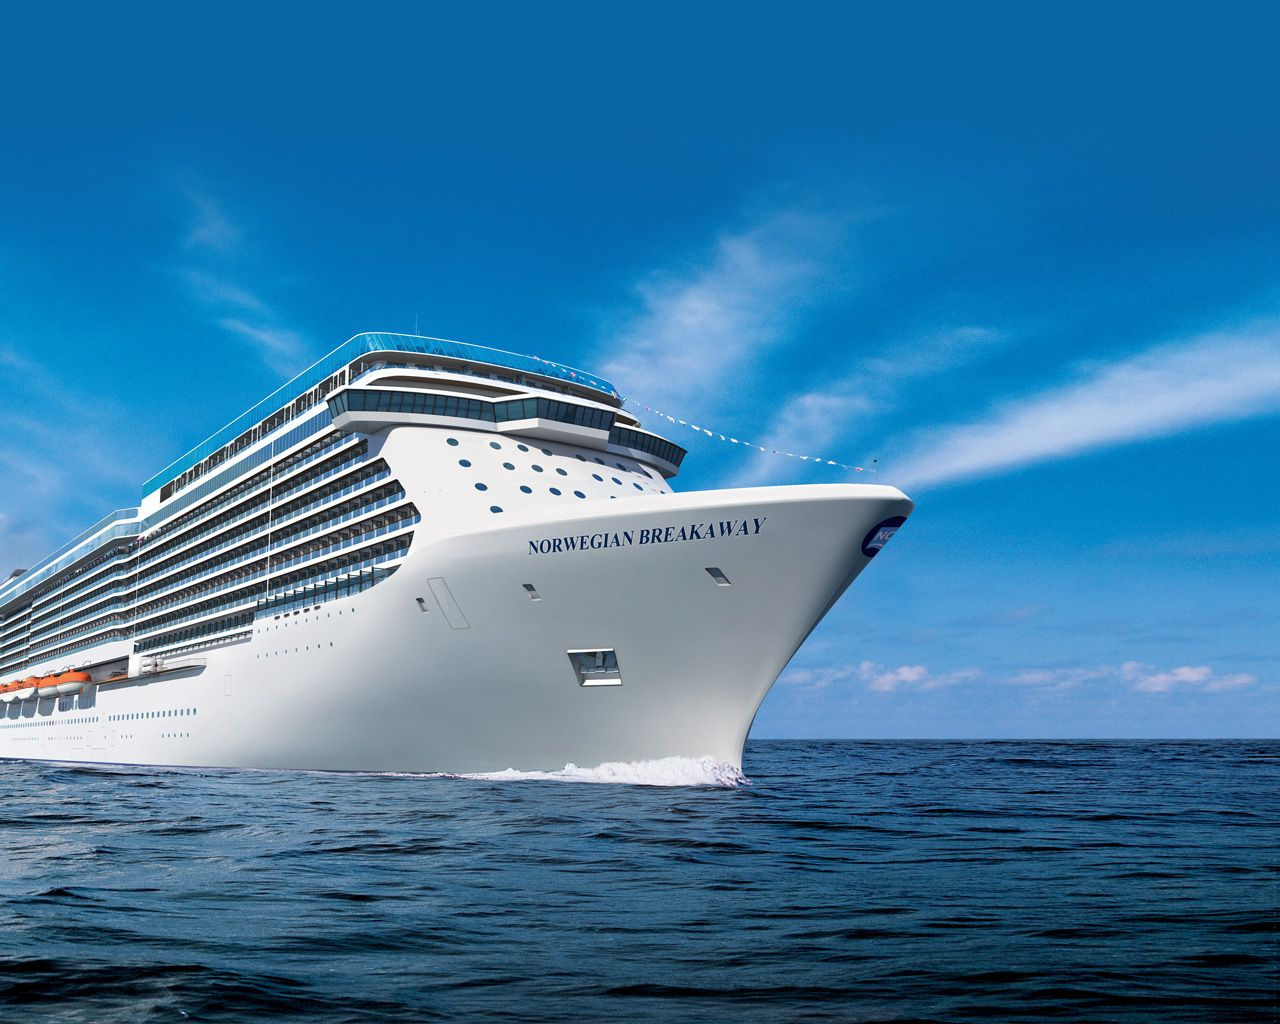 This Is The New NCL Breakaway Cruise Ship- Beautiful! It